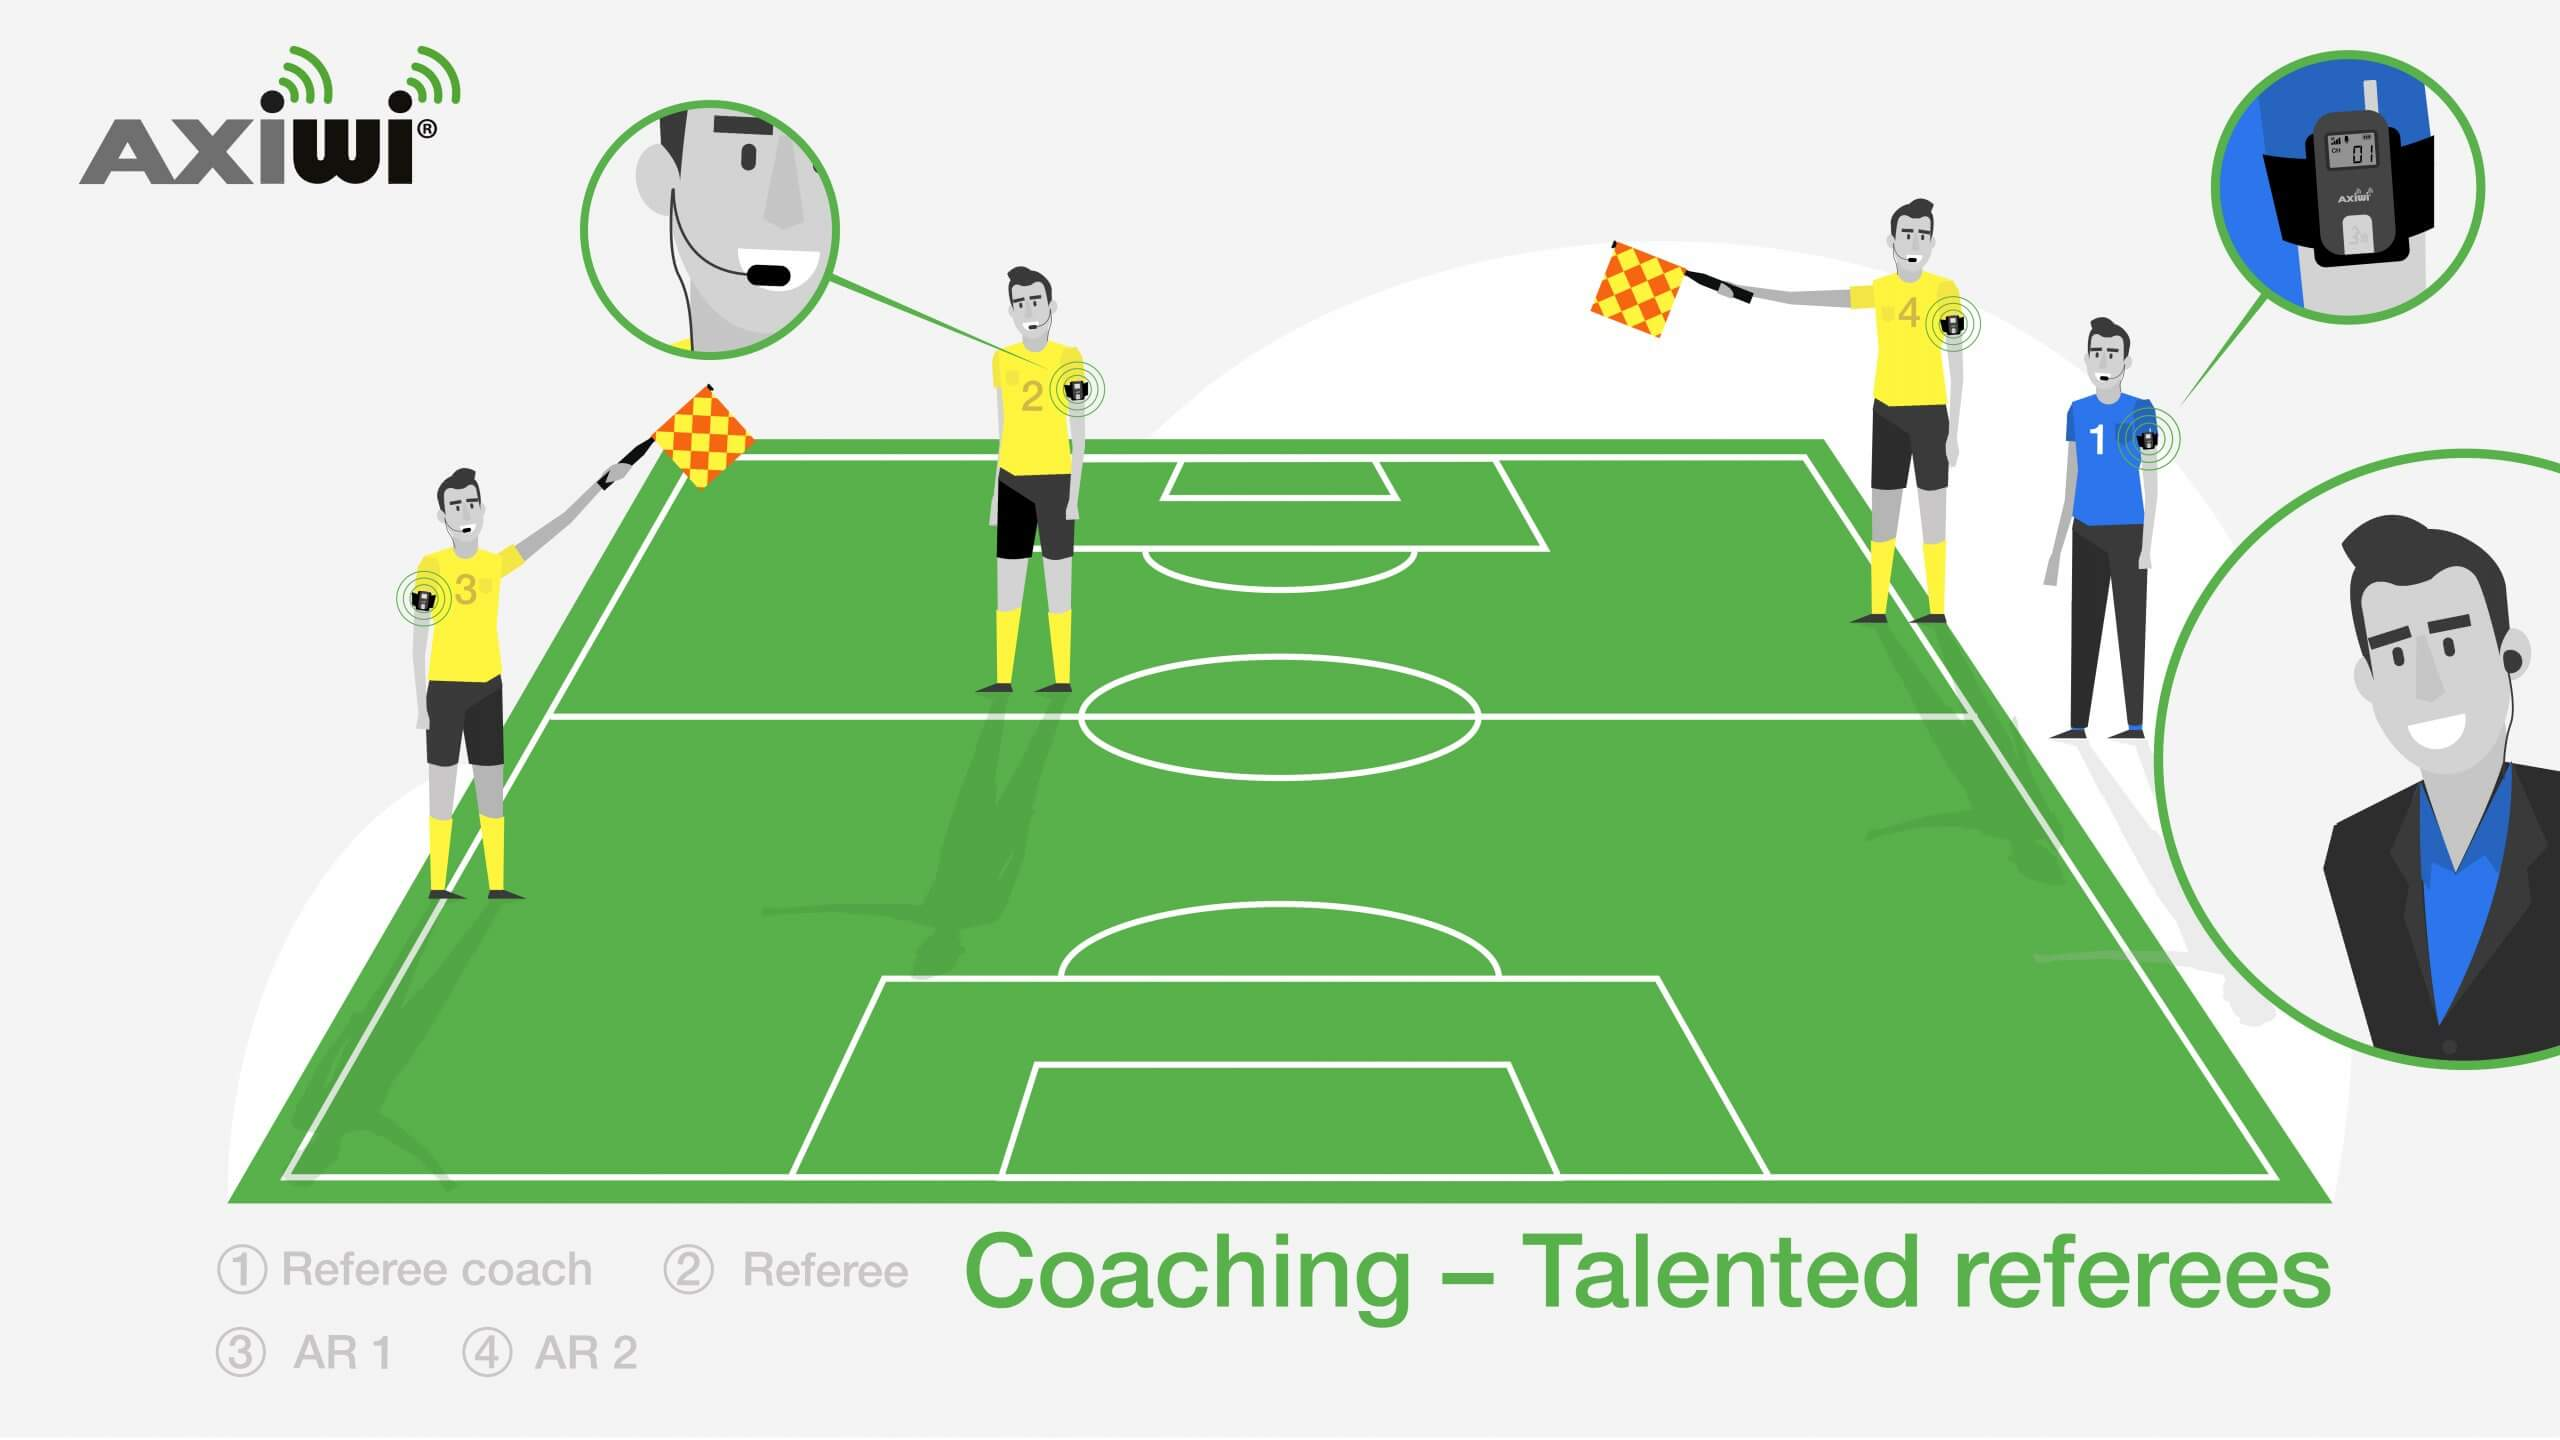 wireless referee communication system for coaching talented referees